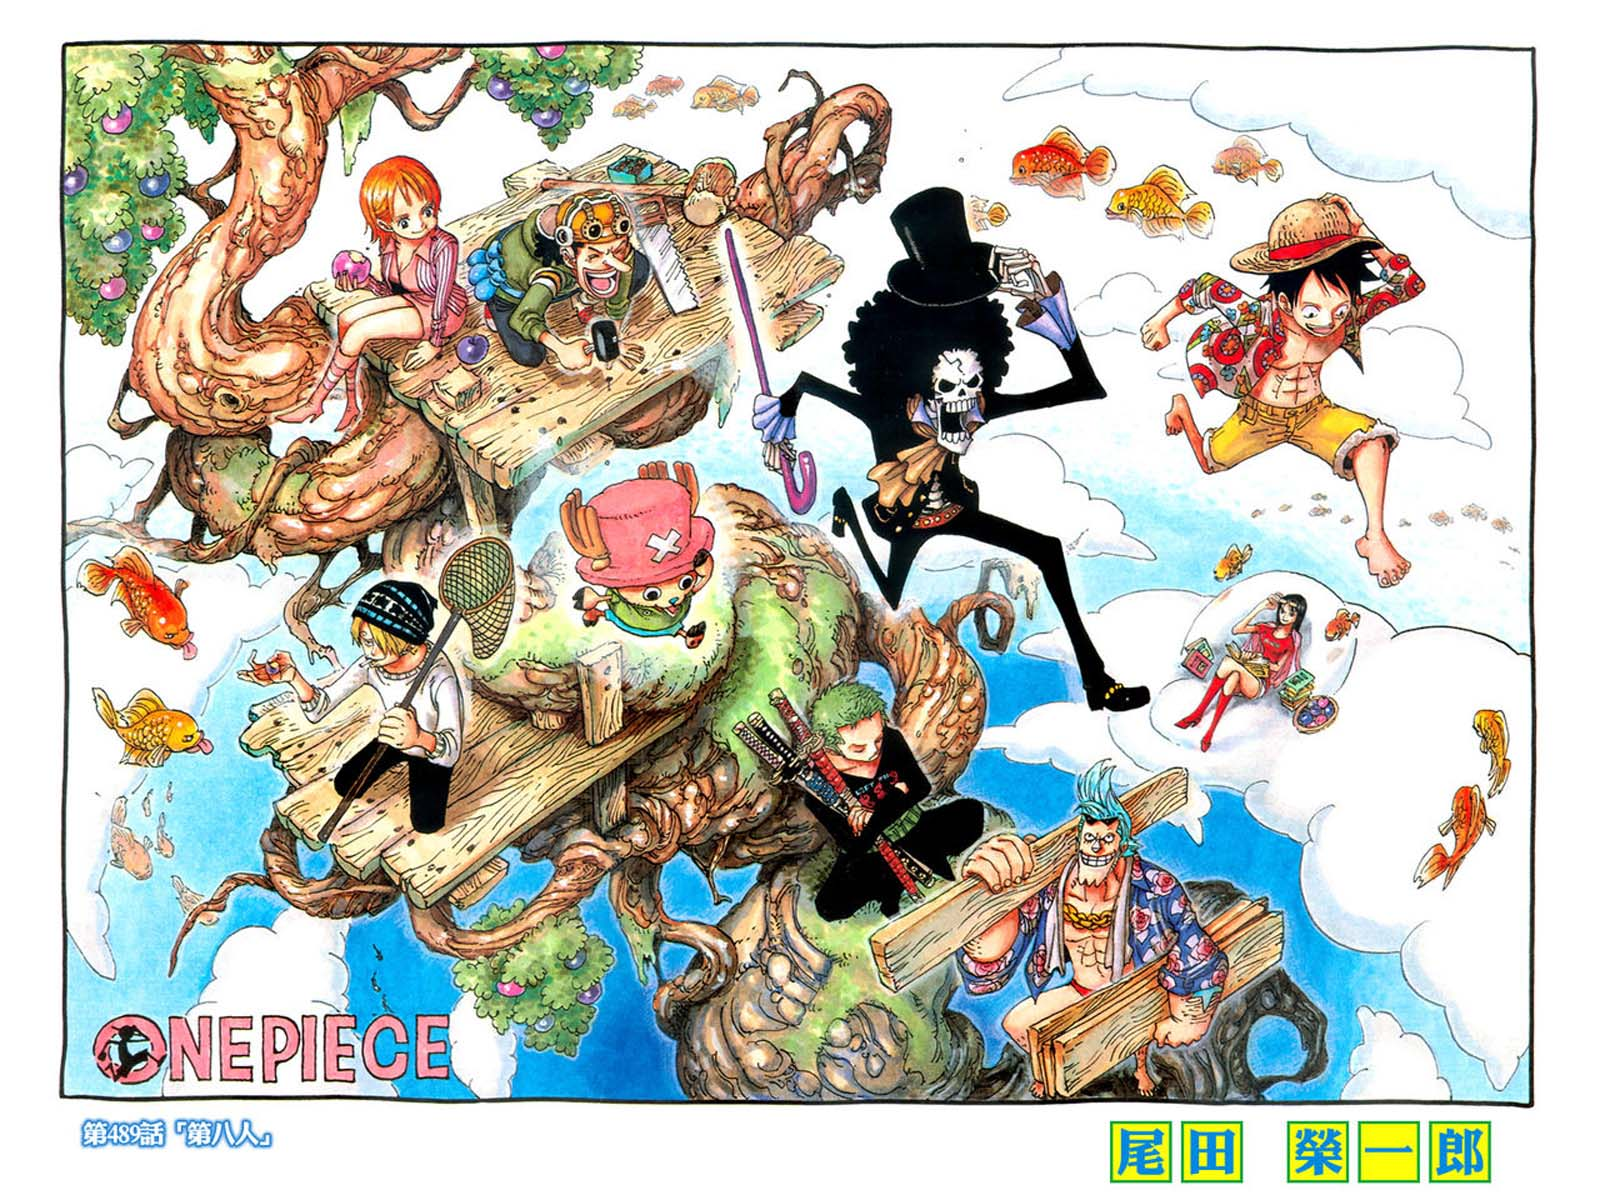 one piece characters day hd wallpapers Car Tuning